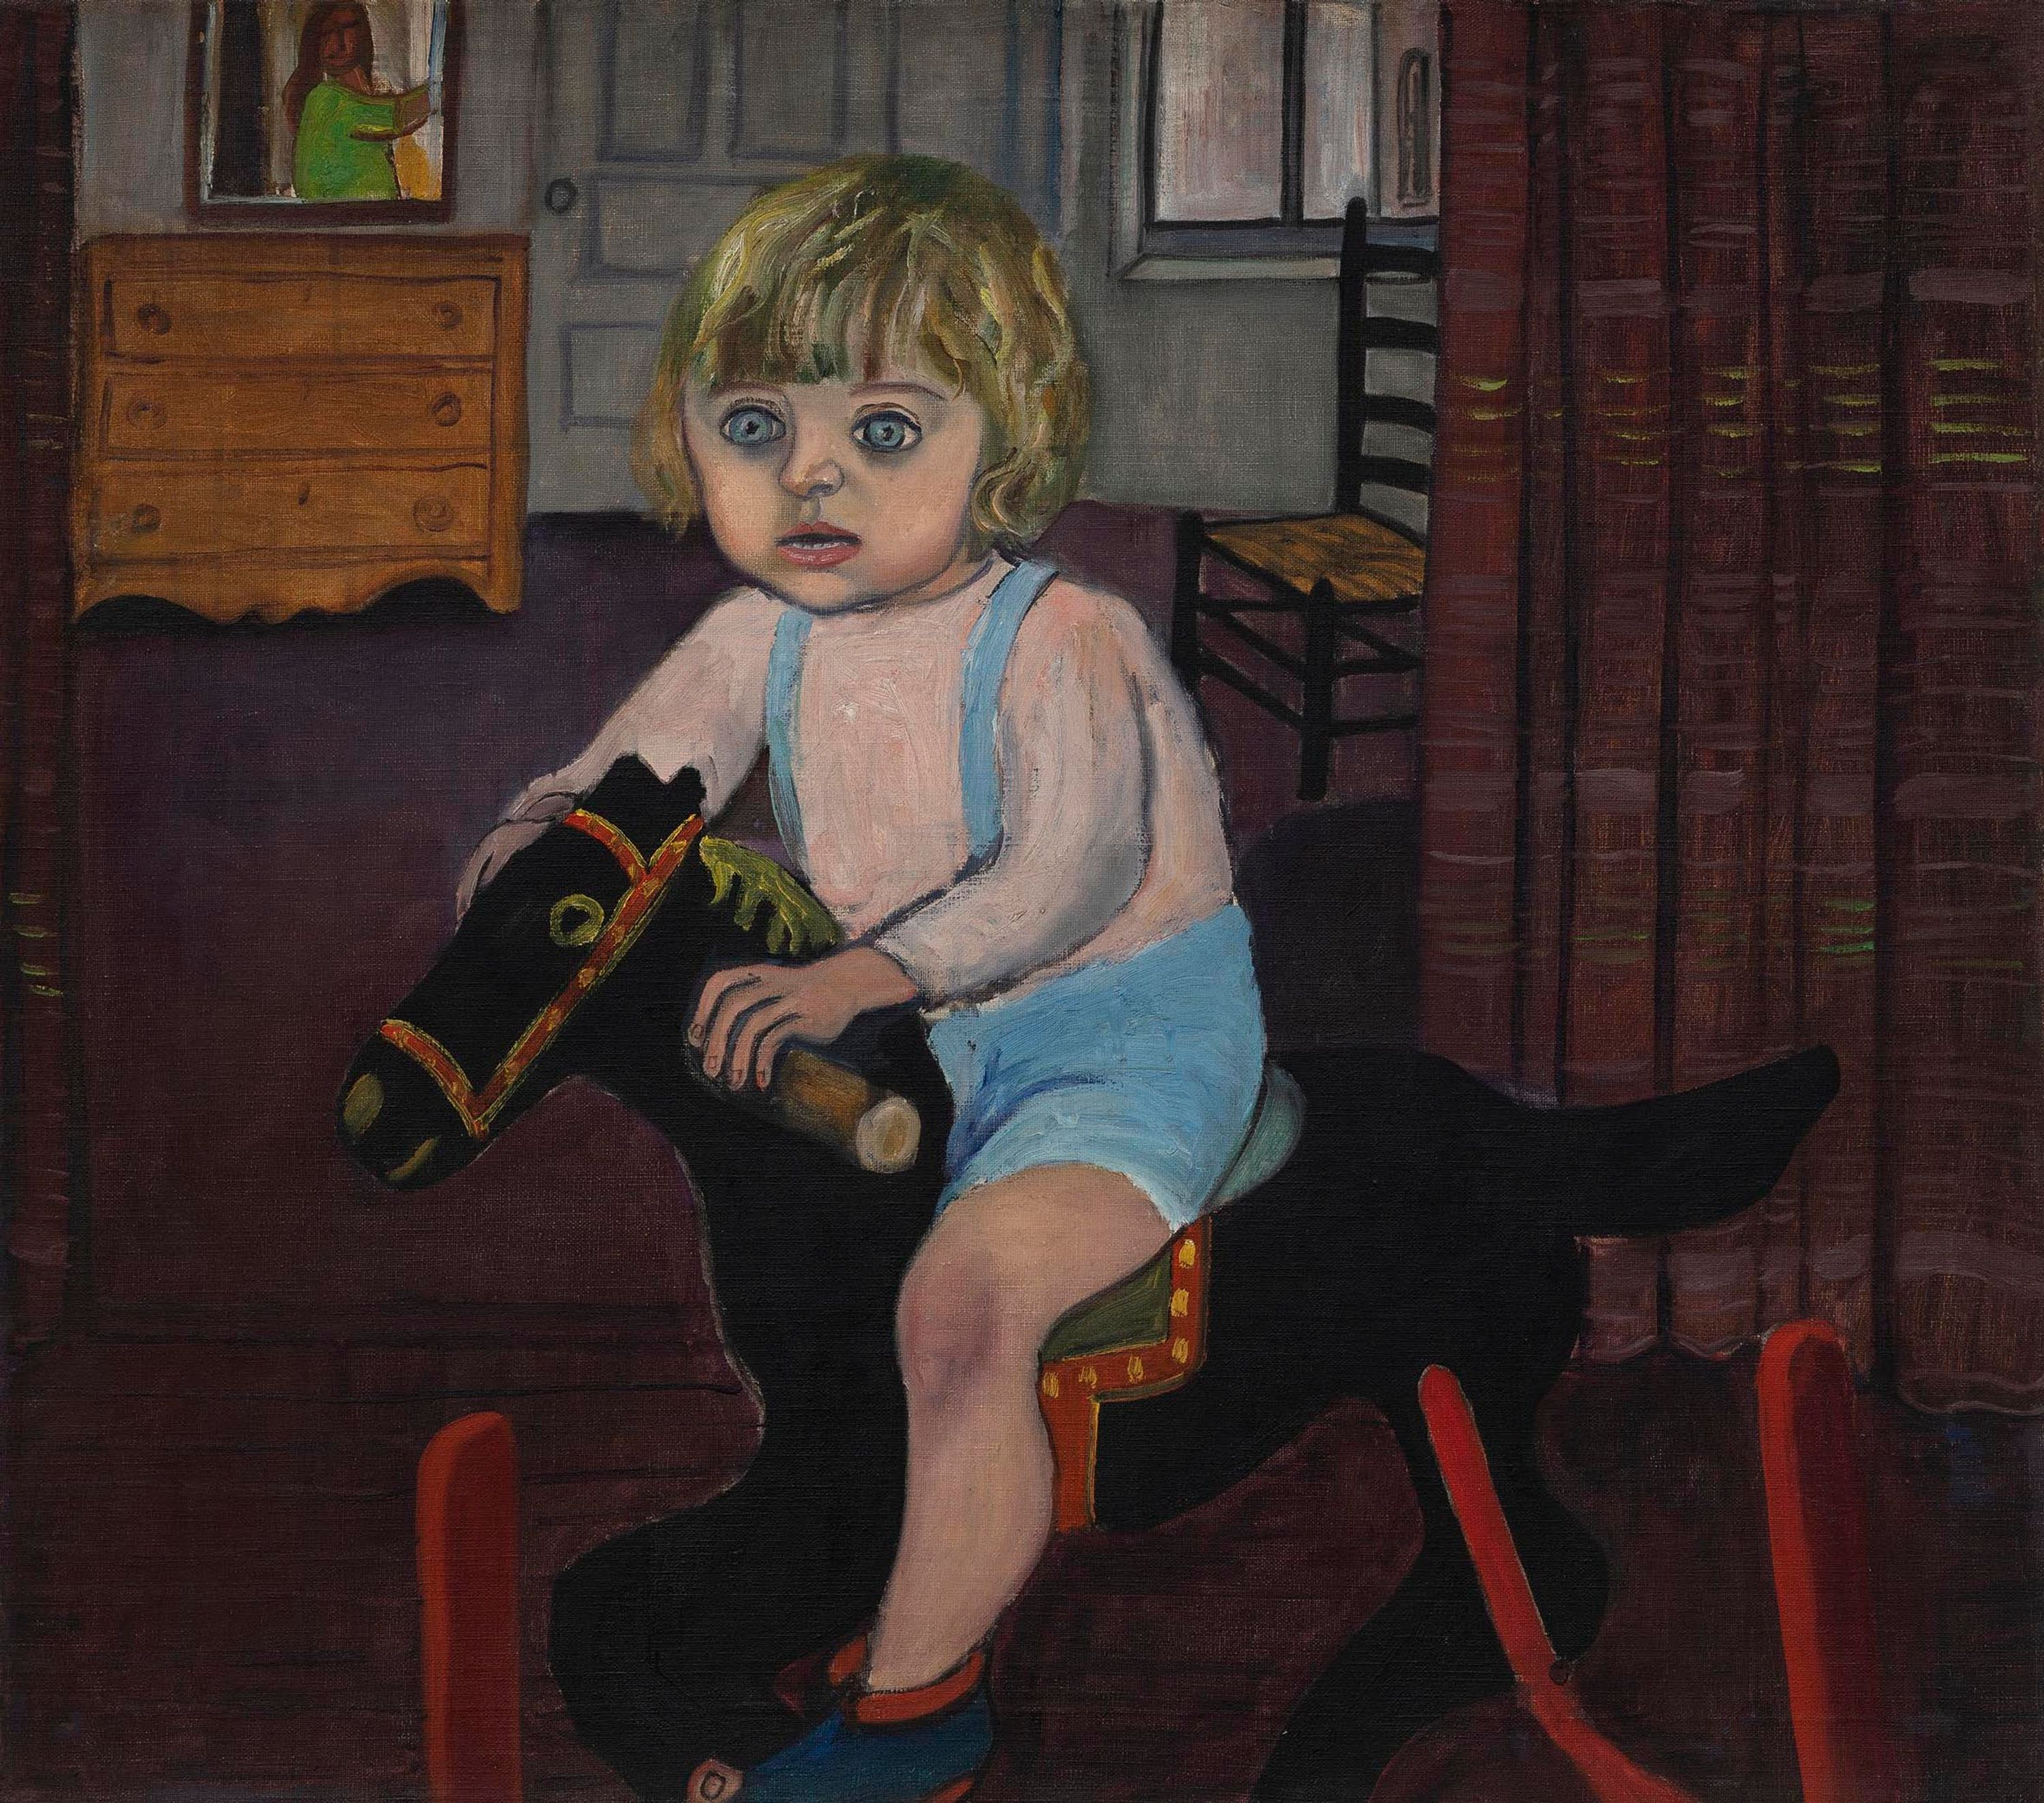 A child with wide, almost fearful eyes rocks on a rocking horse.